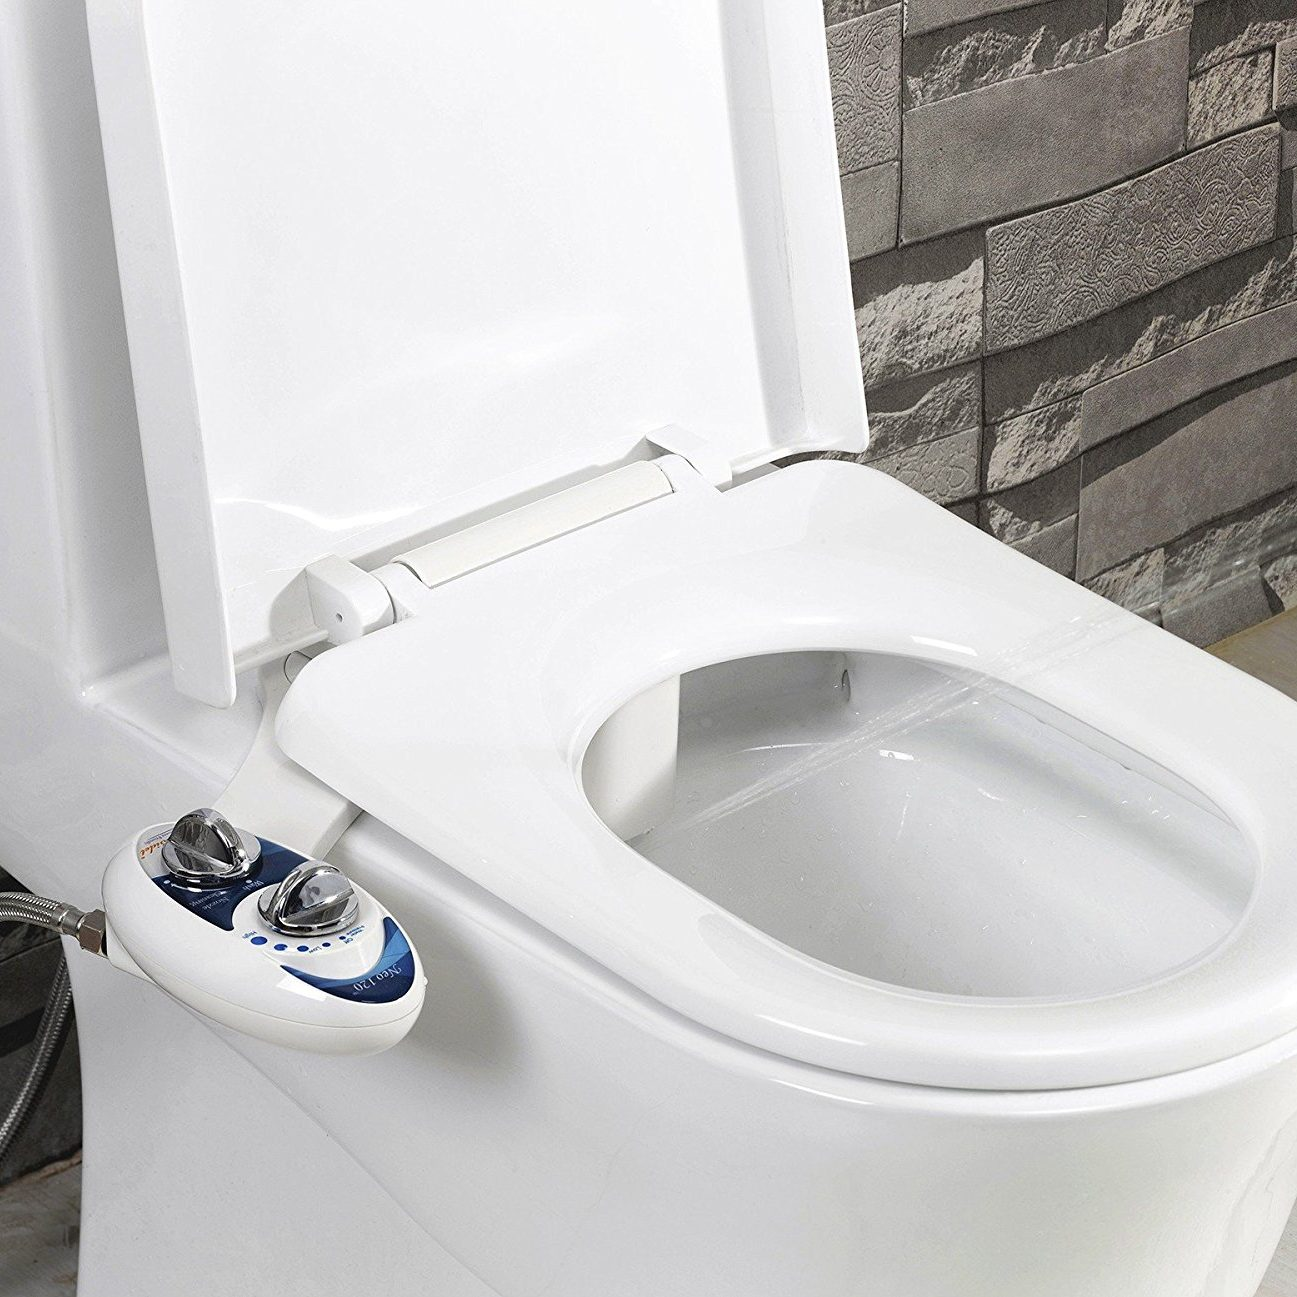 Best Bidet Toilet Seat Attachment Reviews Toilet Review